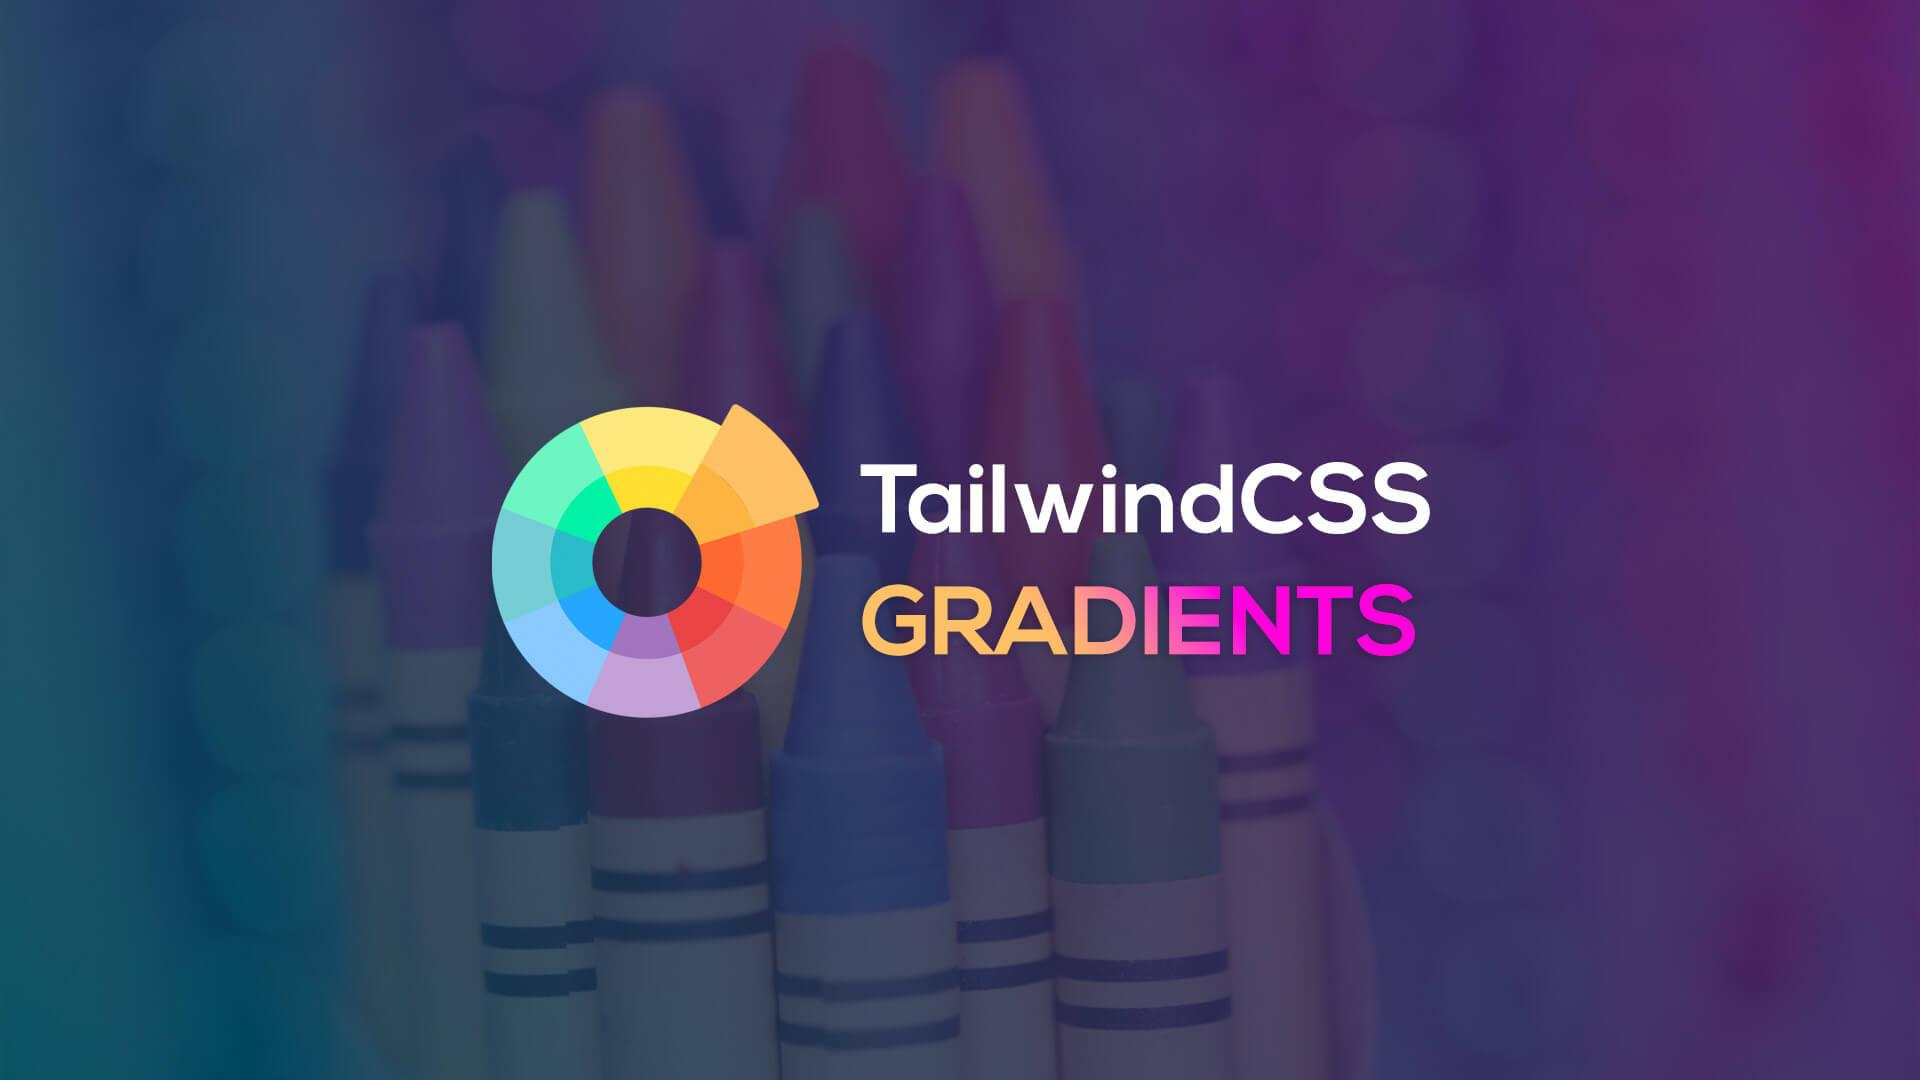 TailwindCSS Gradients